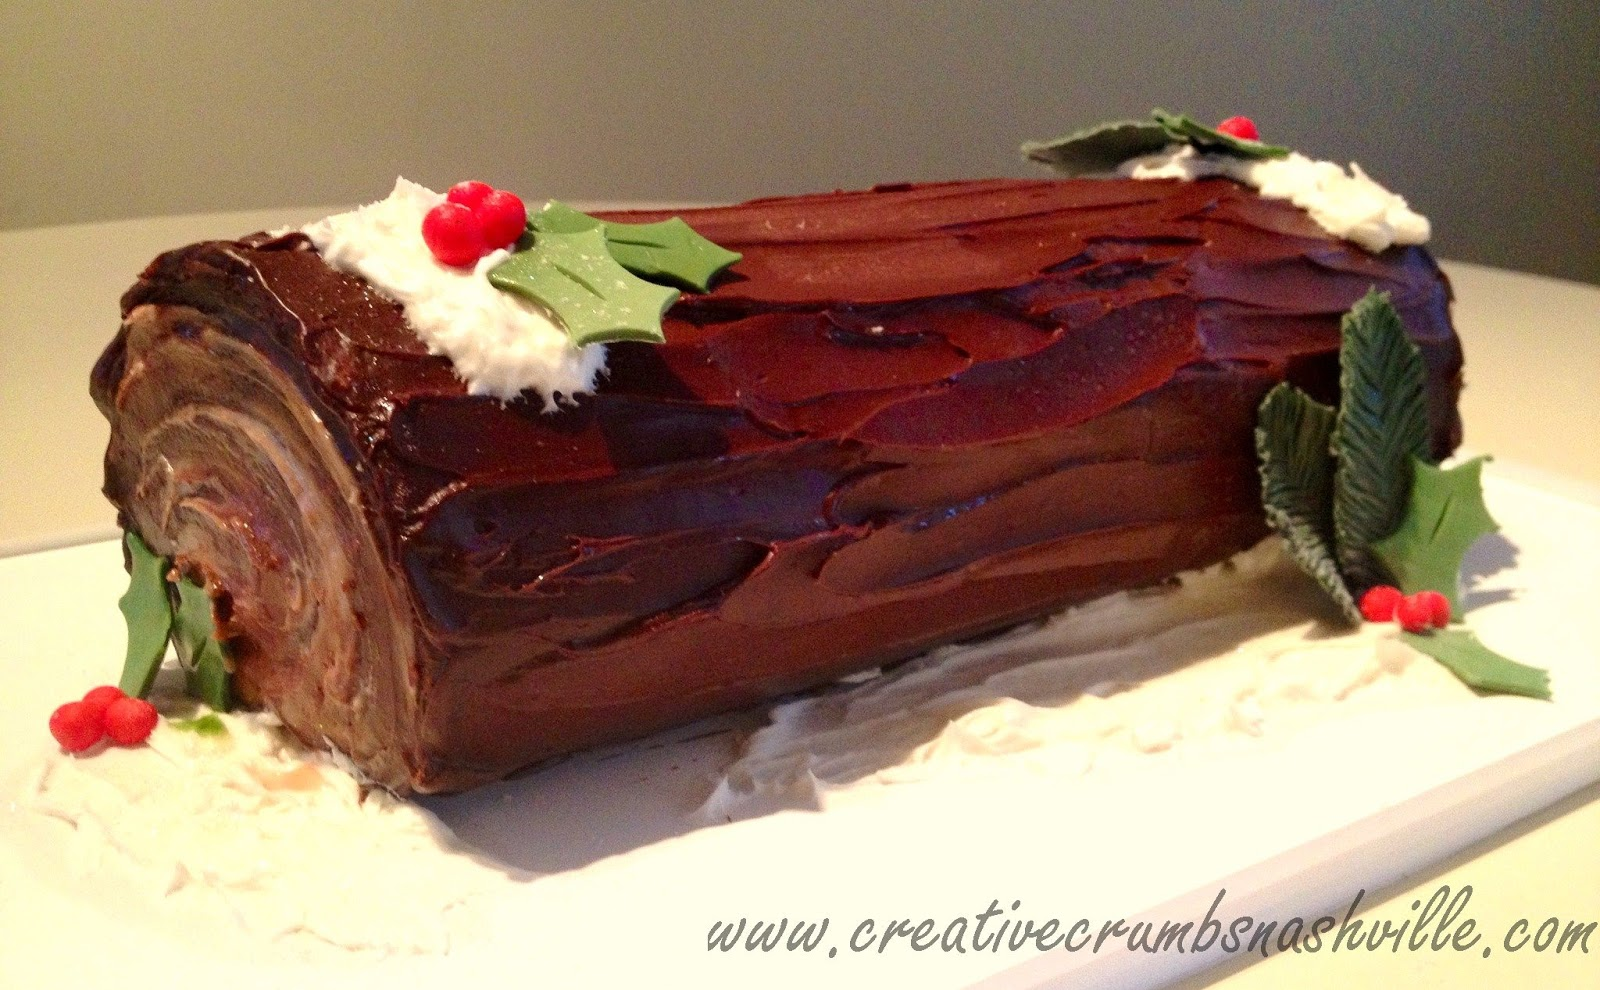 the yule log was made with a delicate vanilla sponge